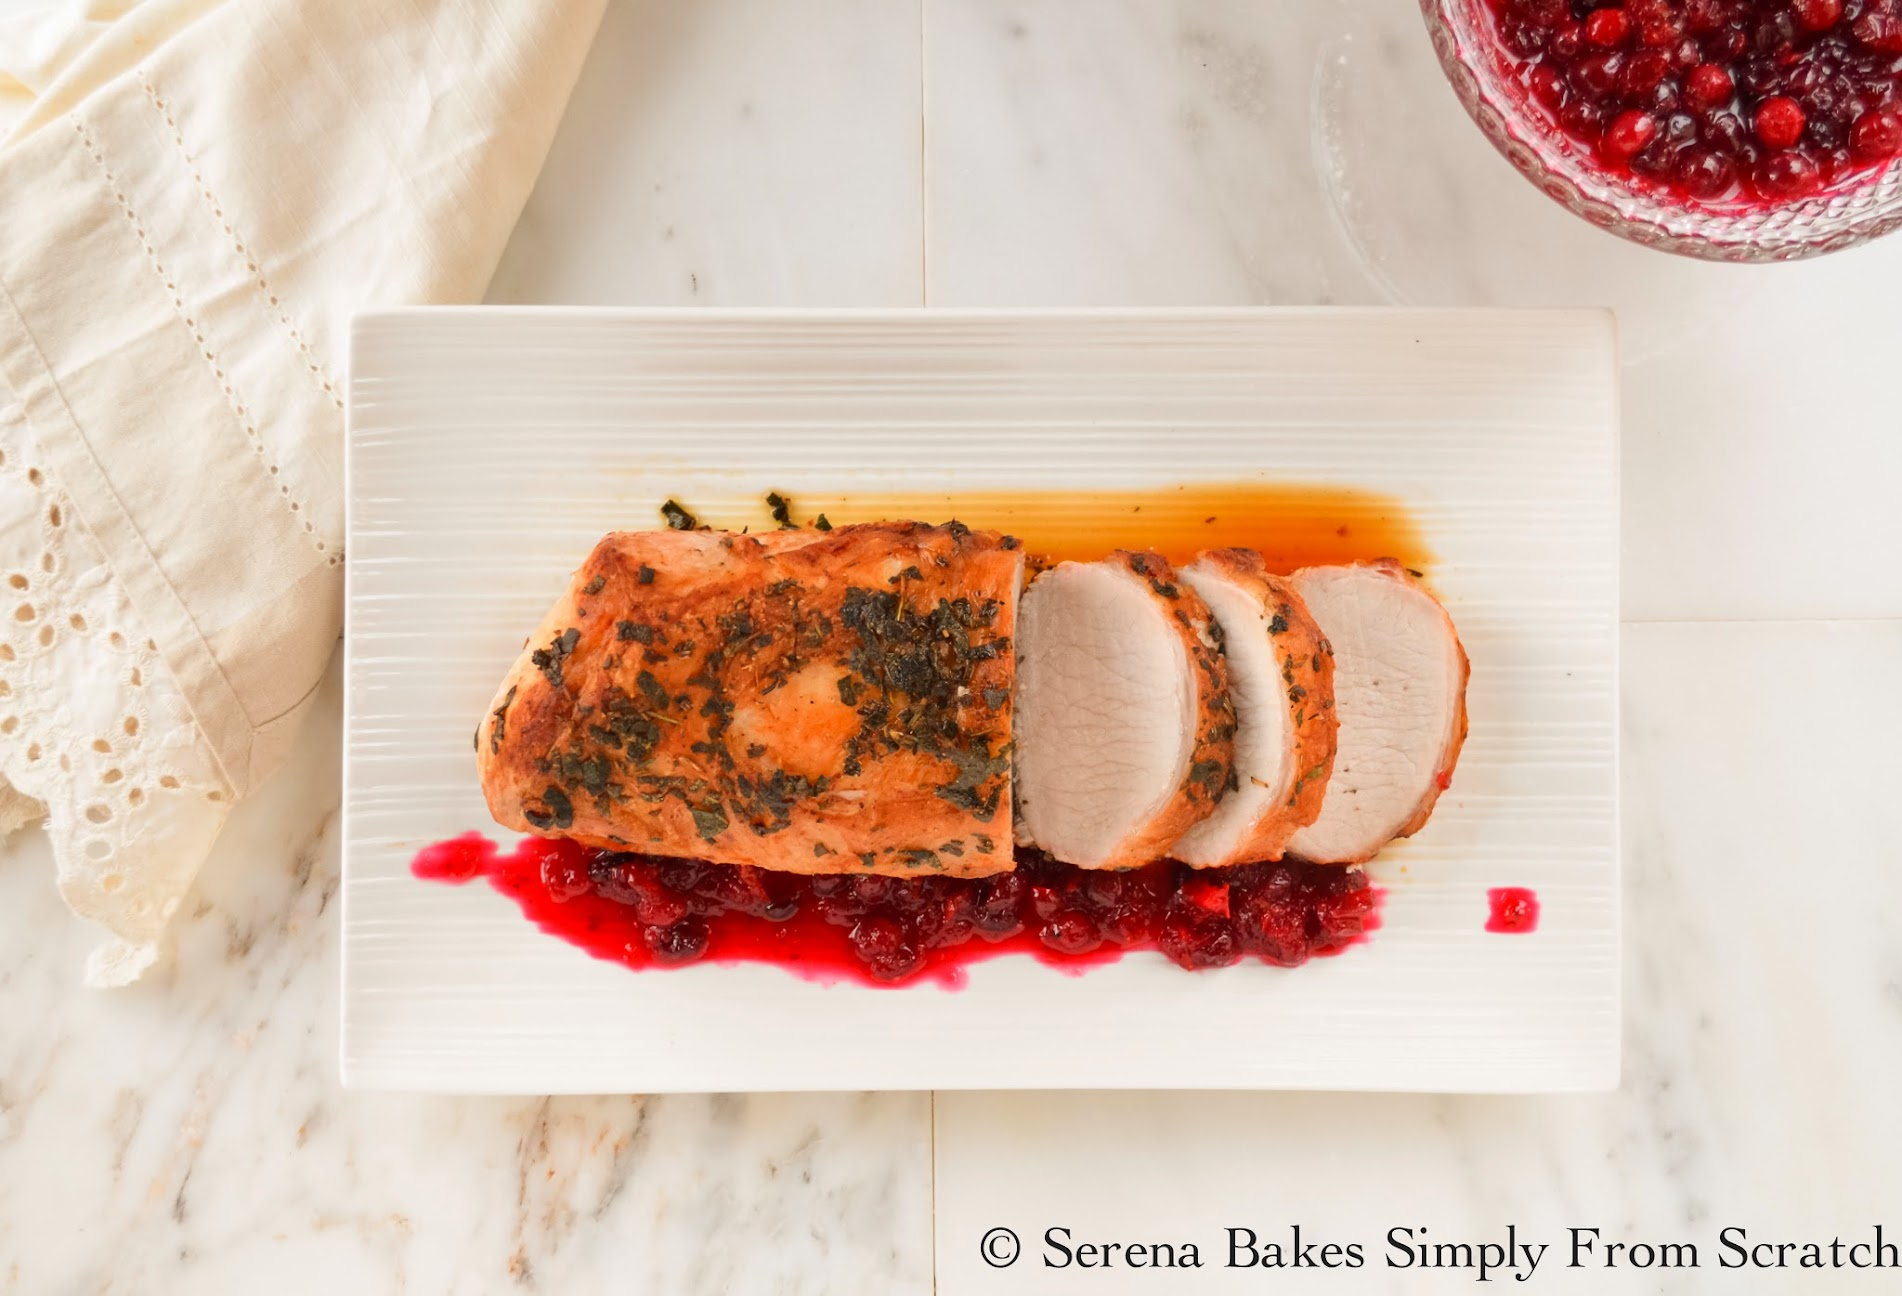 Rosemary-Sage-Pork-Loin-Roast-Cranberry-Orange-Sauce.jpg